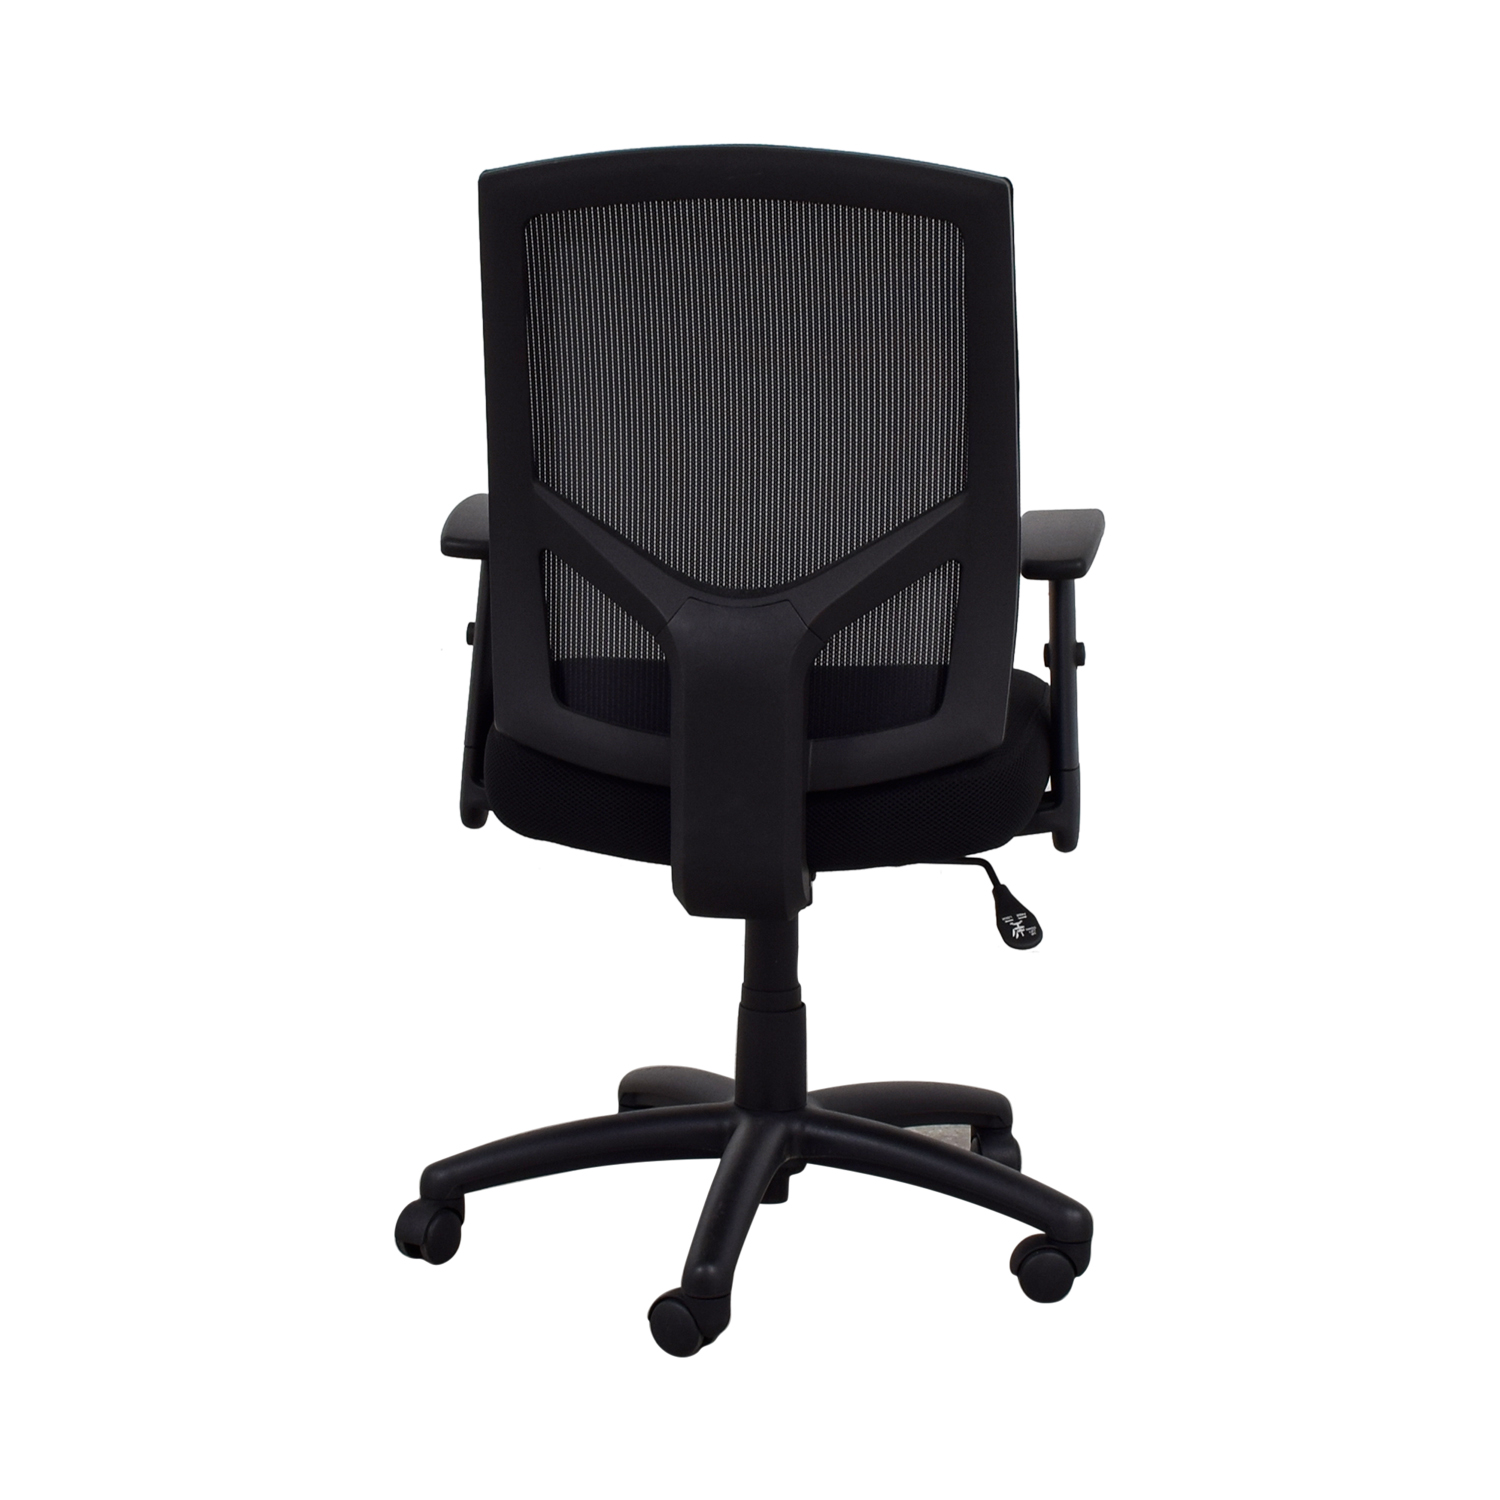 Offices to Go Offices to Go Black Office Chair price